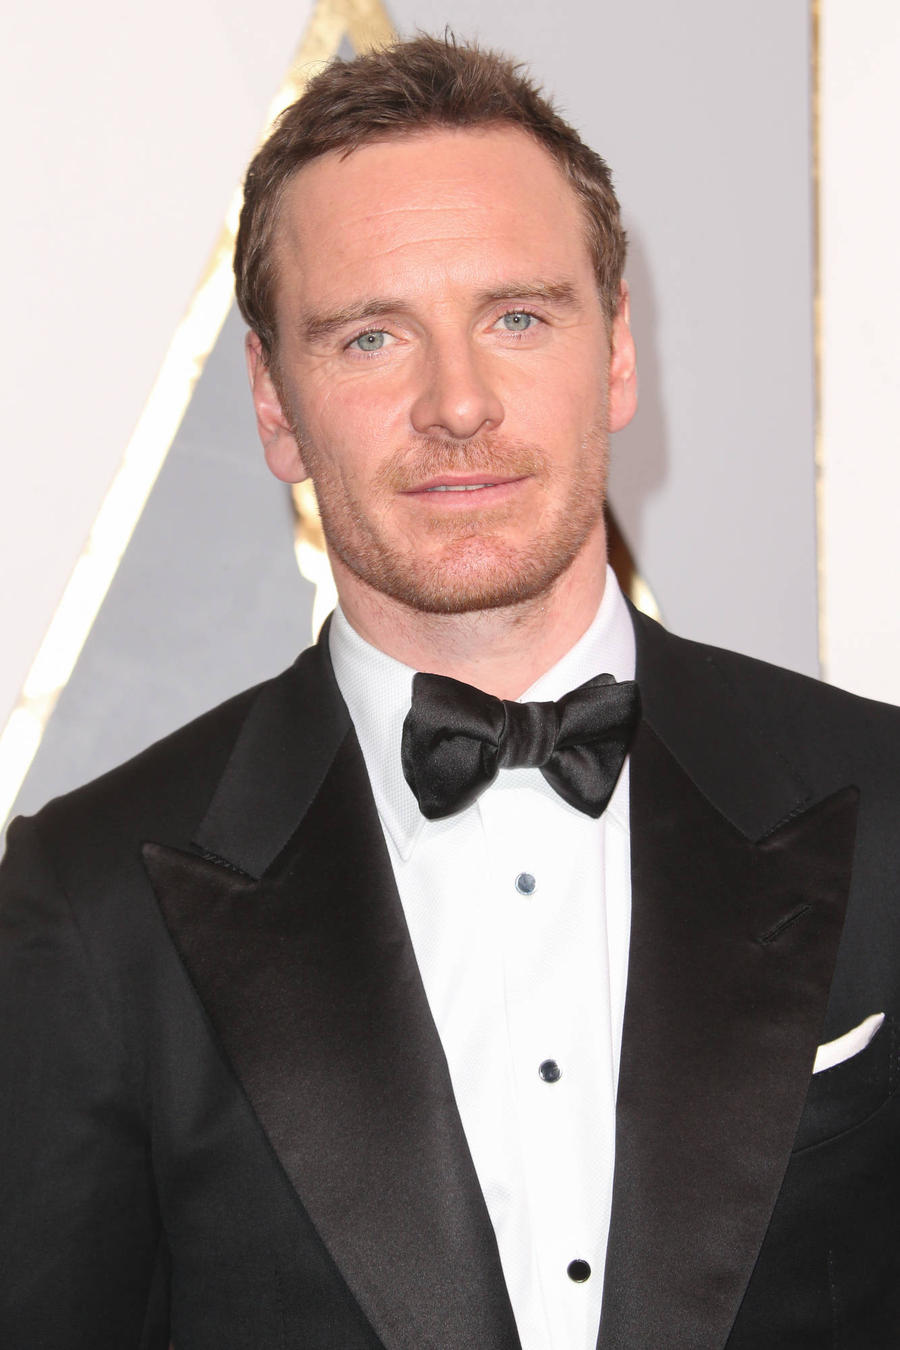 Michael Fassbender Urges Friends To Turn Off Their Phones